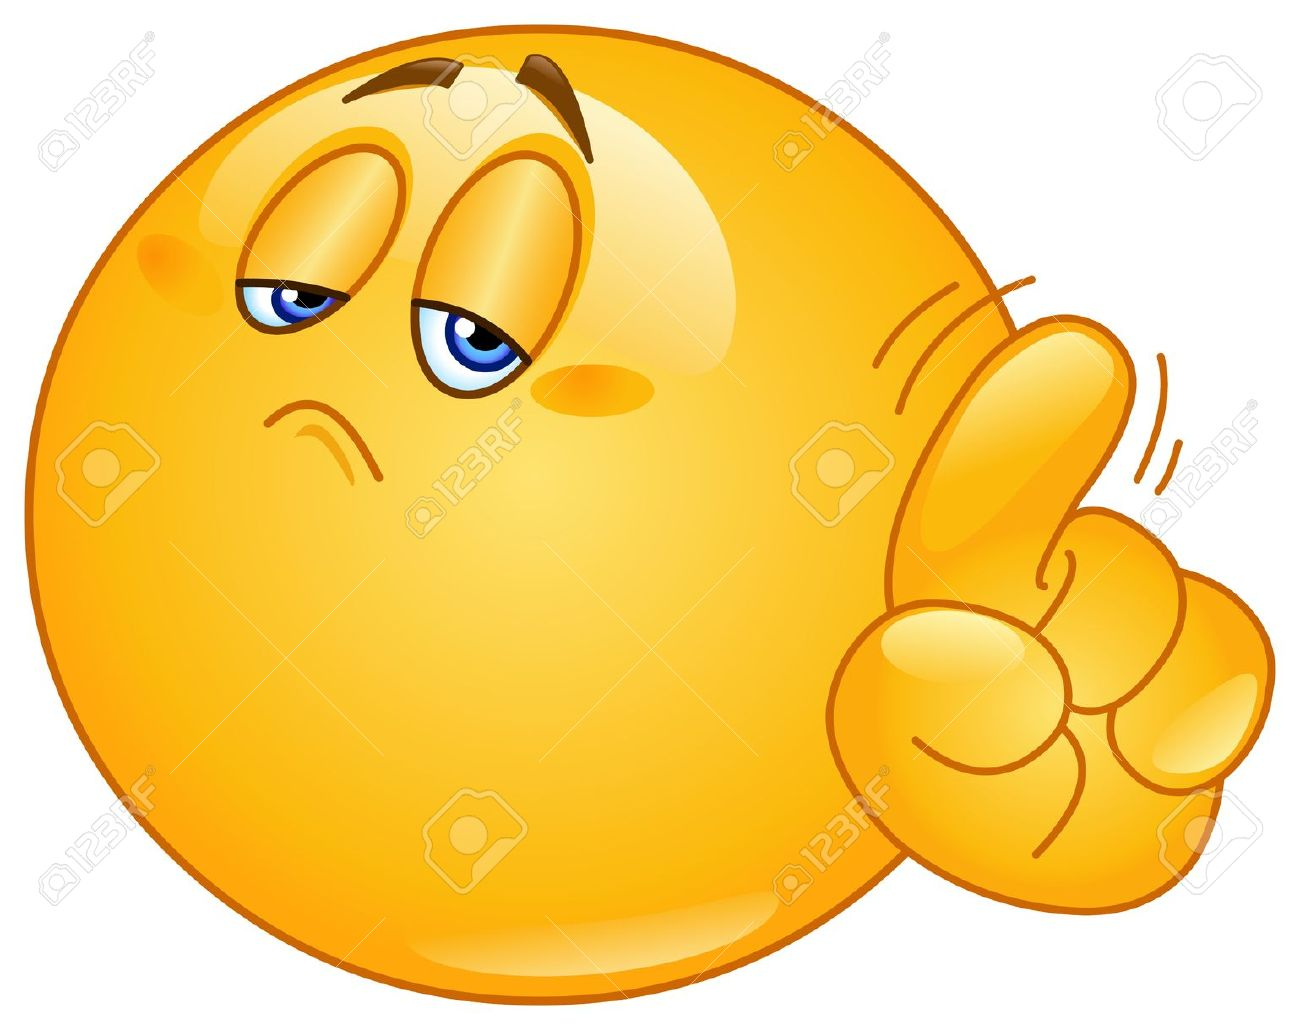 Dislike face clipart jpg freeuse 4,147 Angry Face Stock Illustrations, Cliparts And Royalty Free ... jpg freeuse